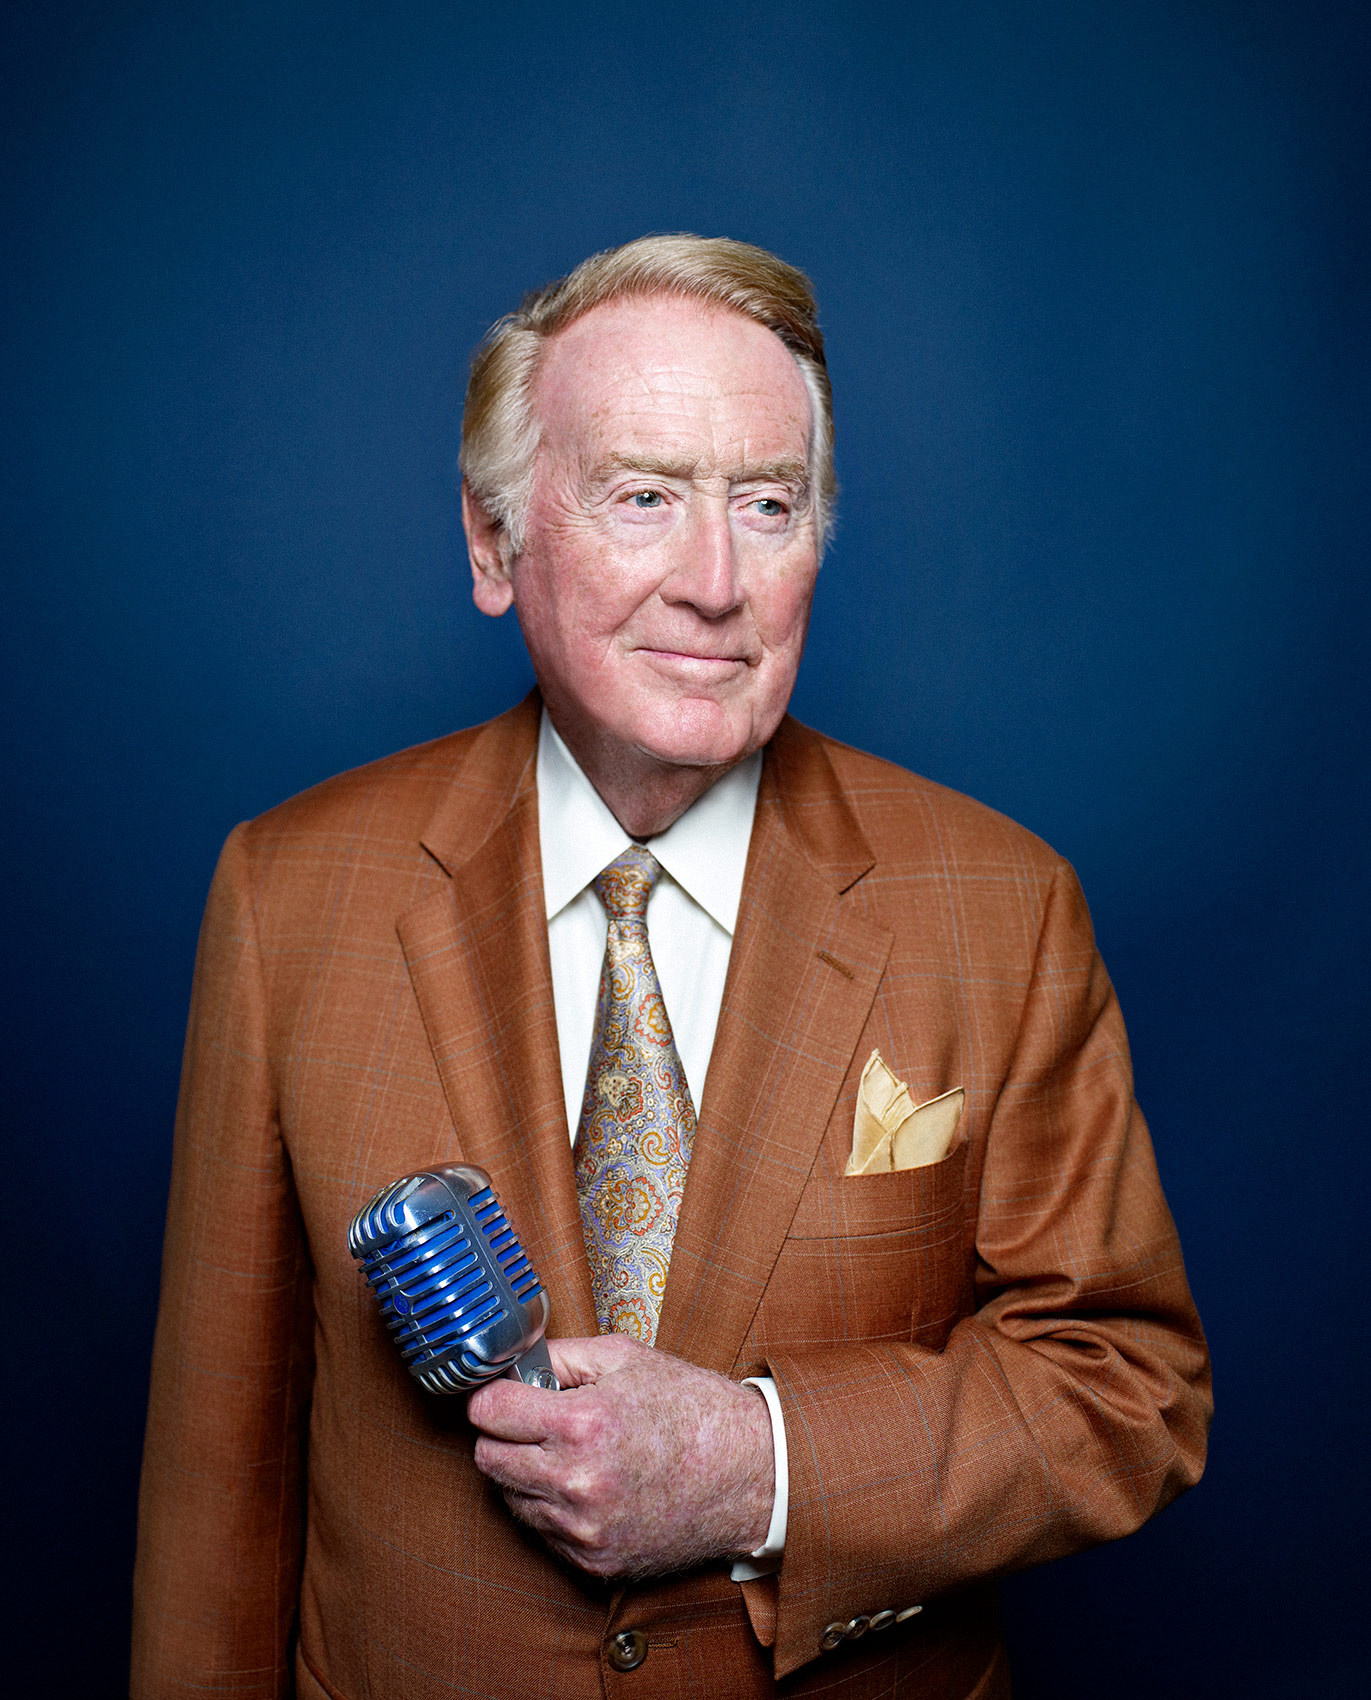 20130604_vin-scully-95536_A-web